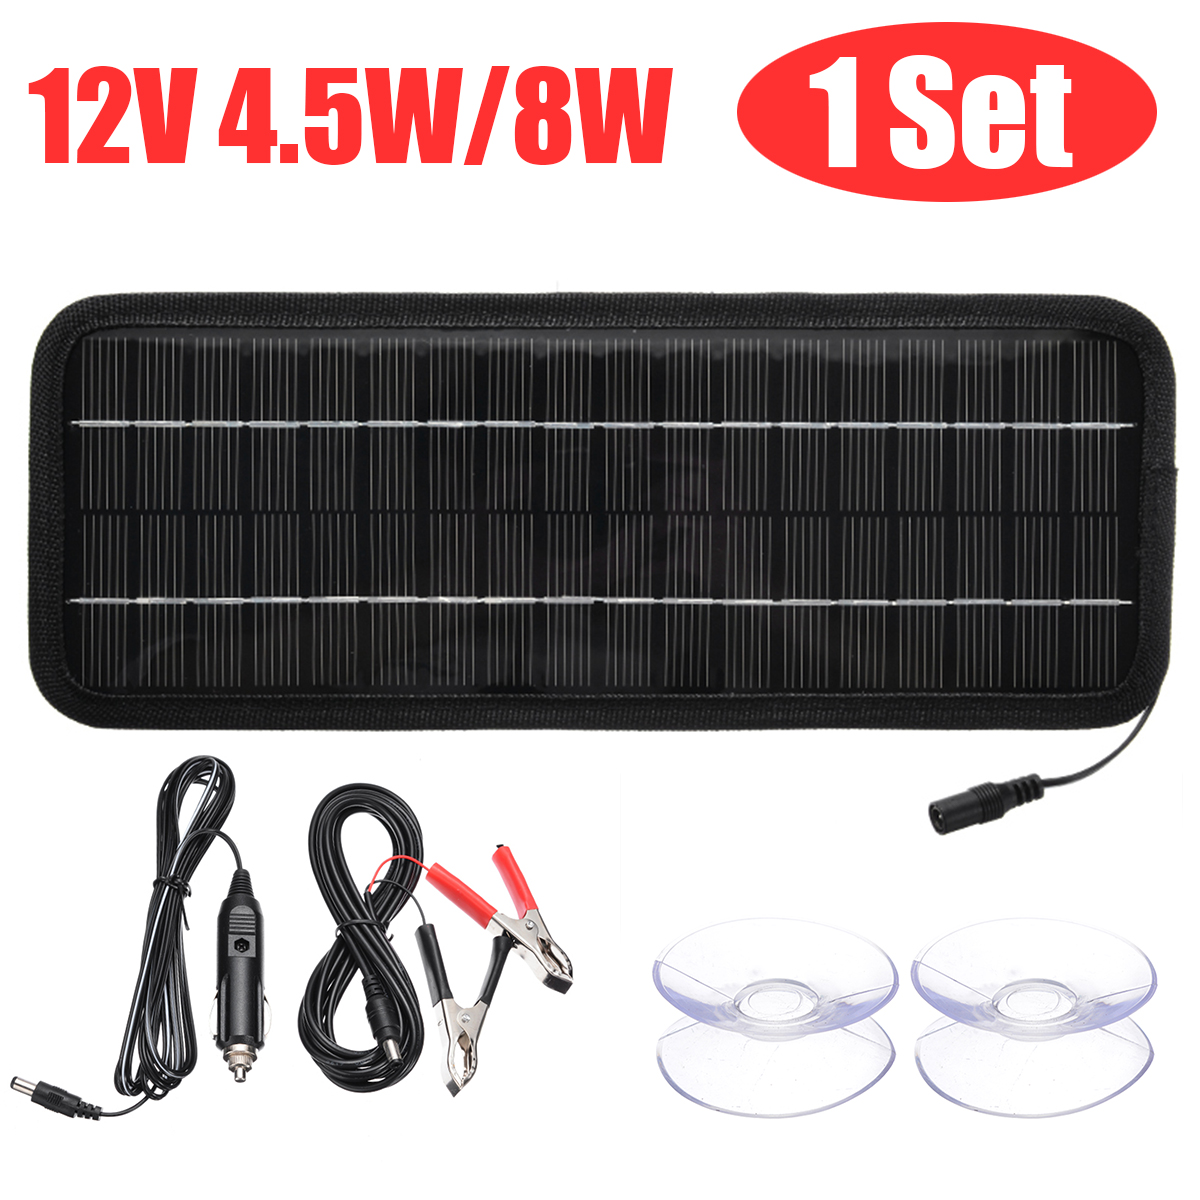 4.5W 8W 12V Portable Car Boat Motorcycle Solar Panel Battery Charger Trickle Supplement Charging Solar Power Panel 320x120x5 Mm